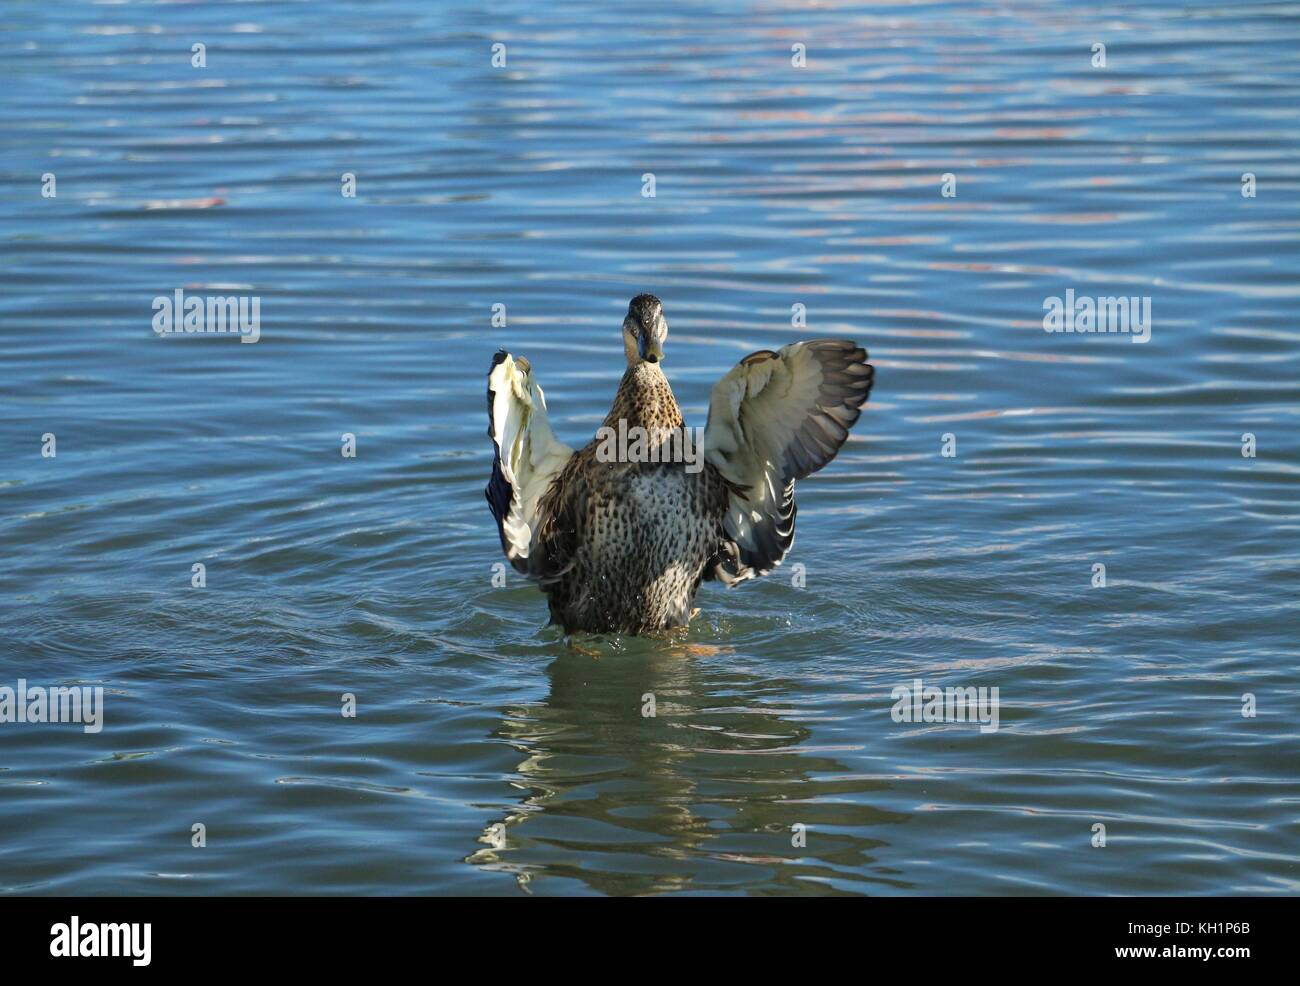 Duck flapping wings in water - Stock Image